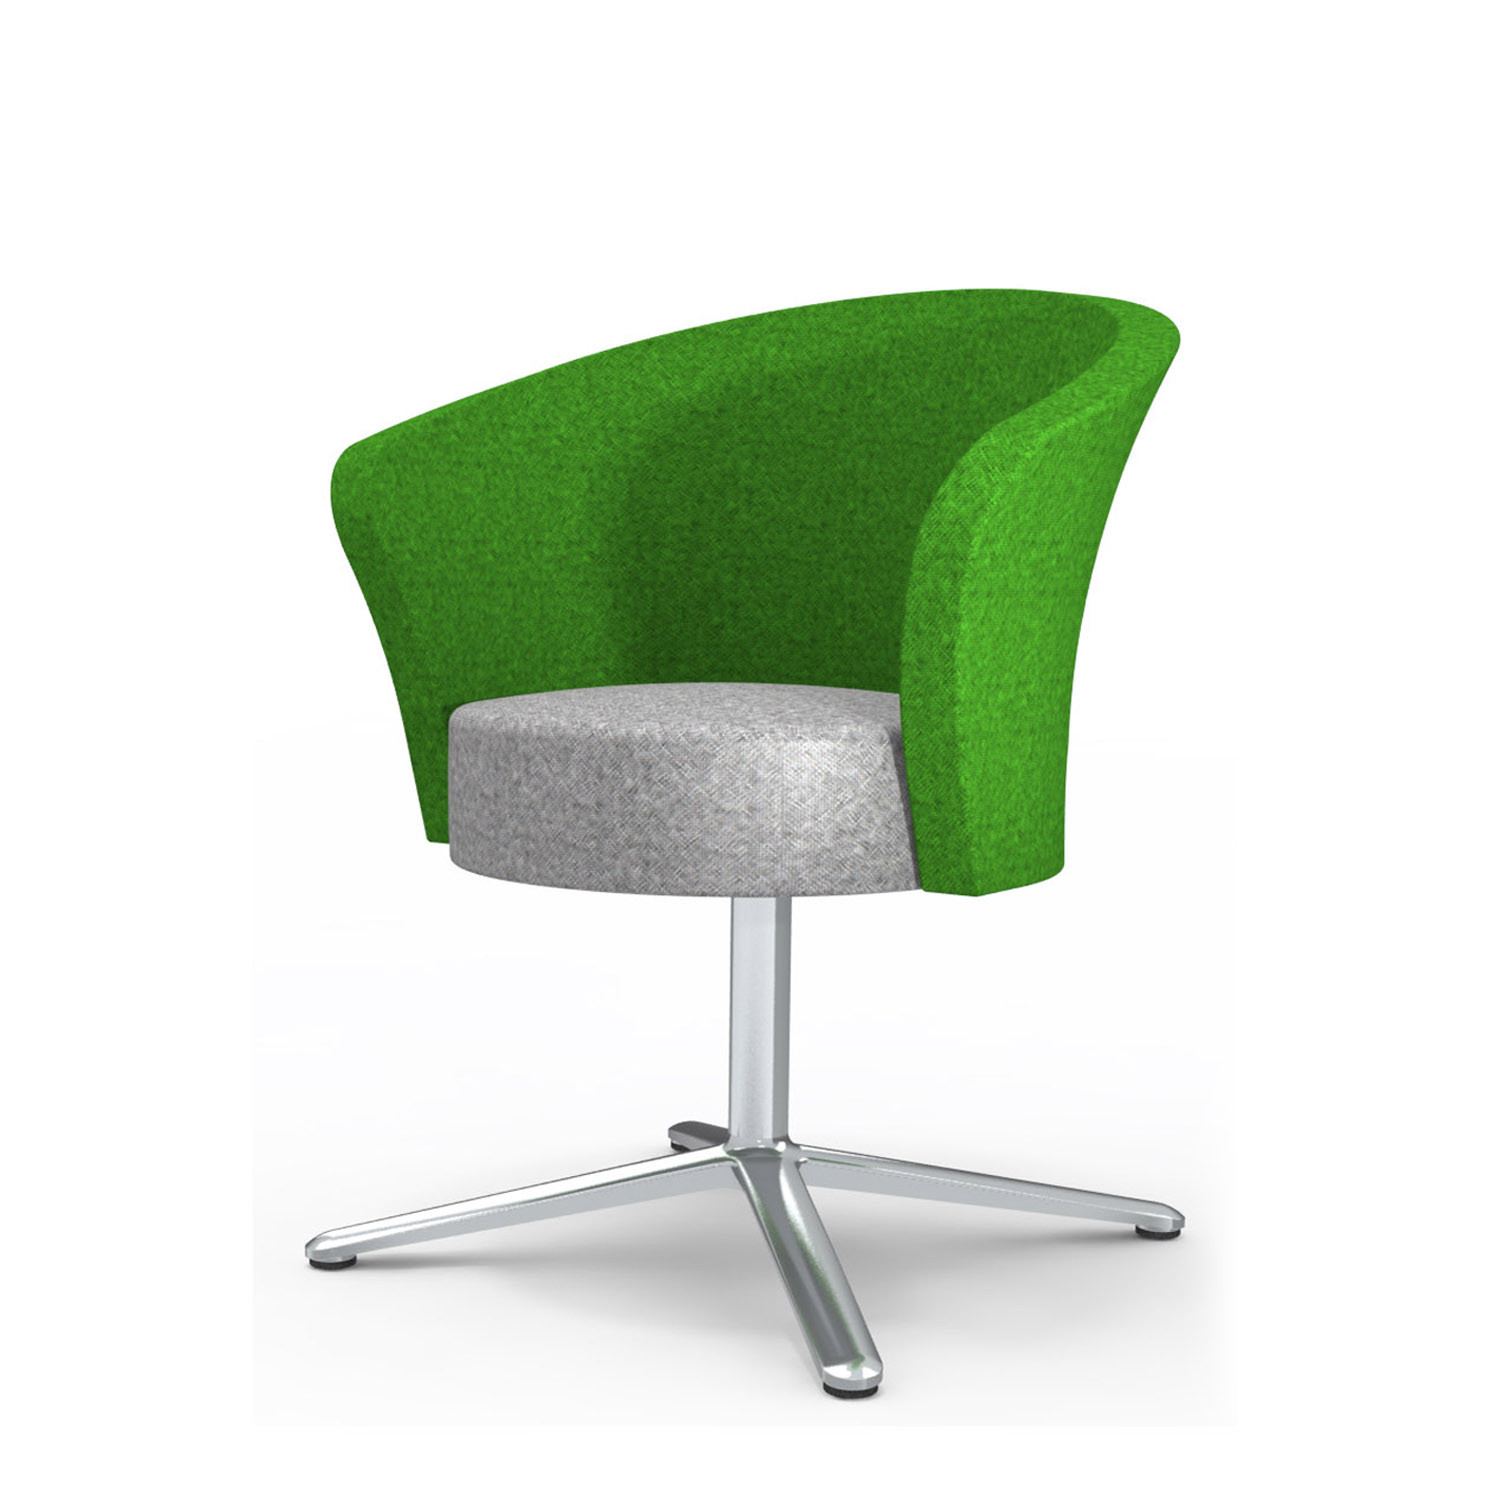 Bud Chair by Roger Webb Associates